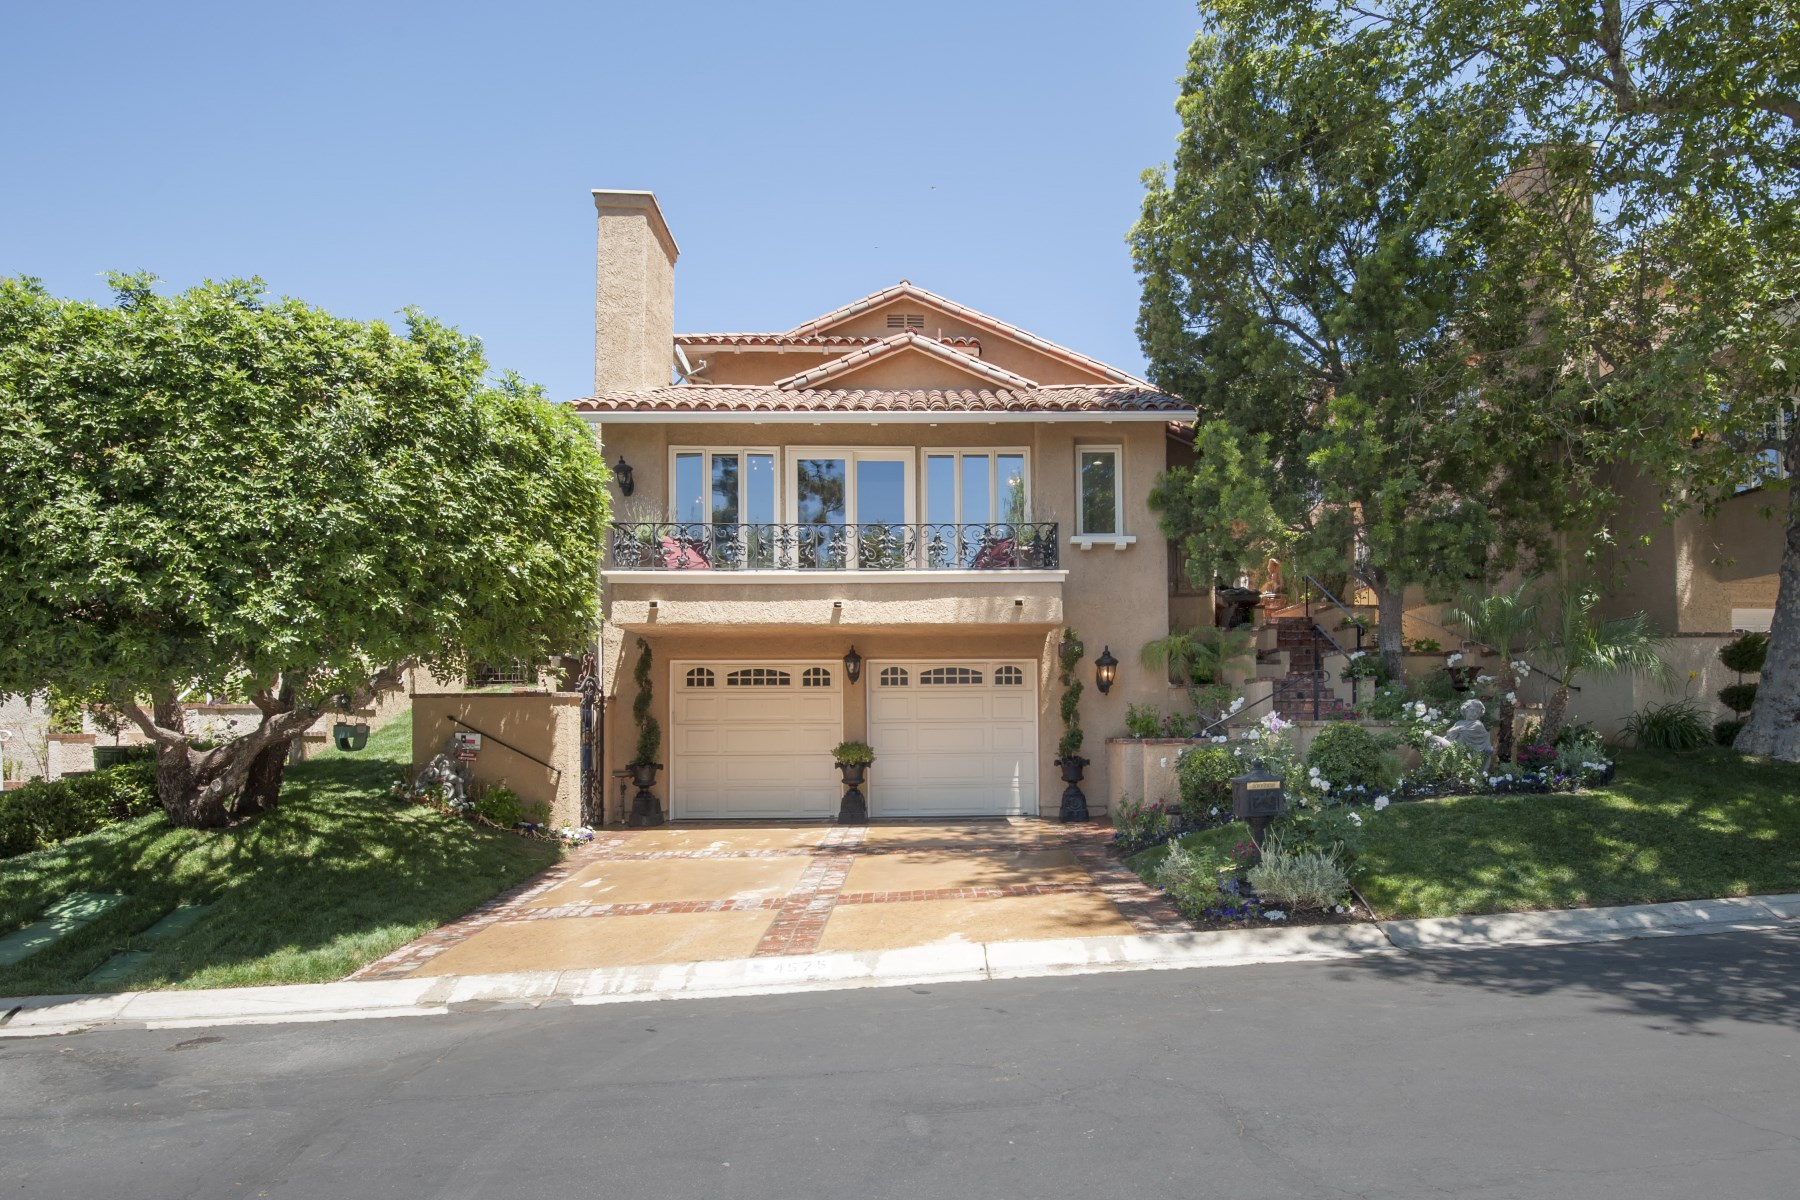 Single Family Home for Sale at 4575RayburnSt.com 4575 Rayburn Street Westlake Village, California 91362 United States